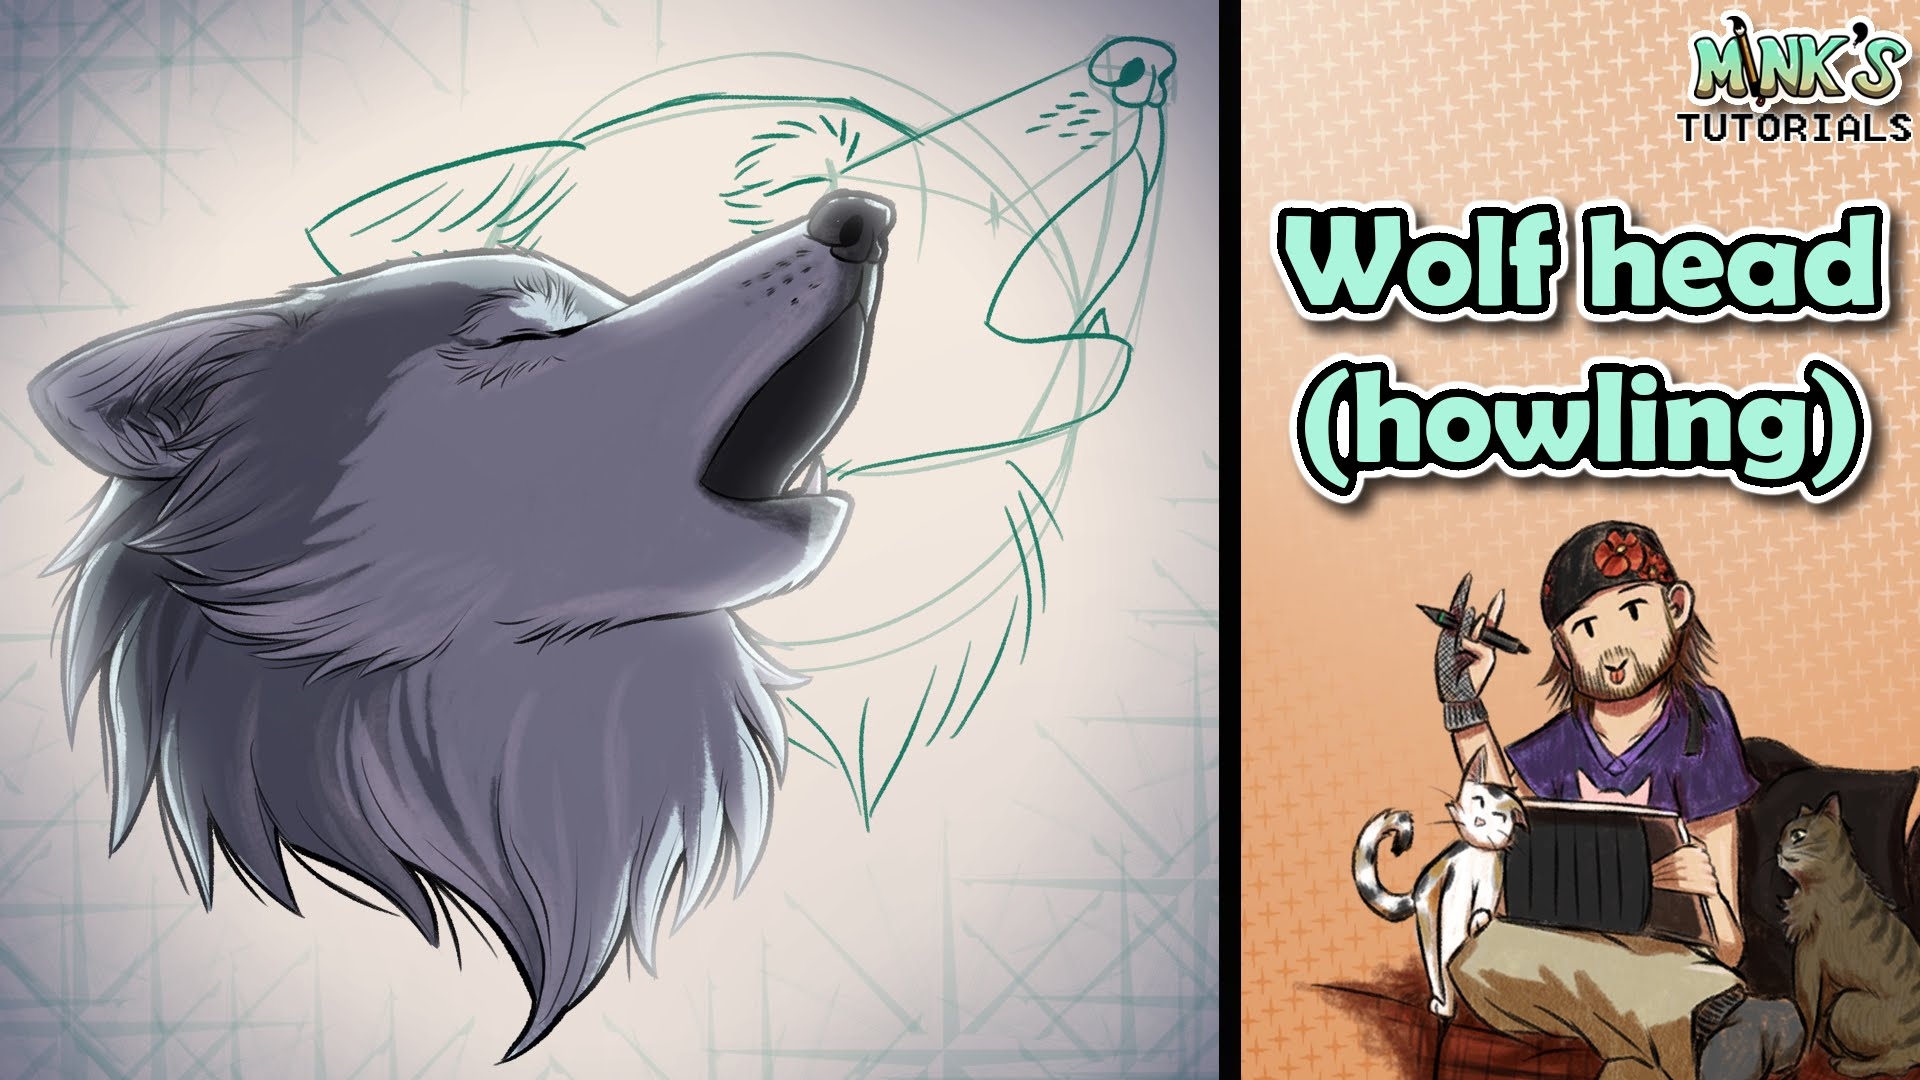 1920x1080 How To Draw A Wolf Head (Howling)